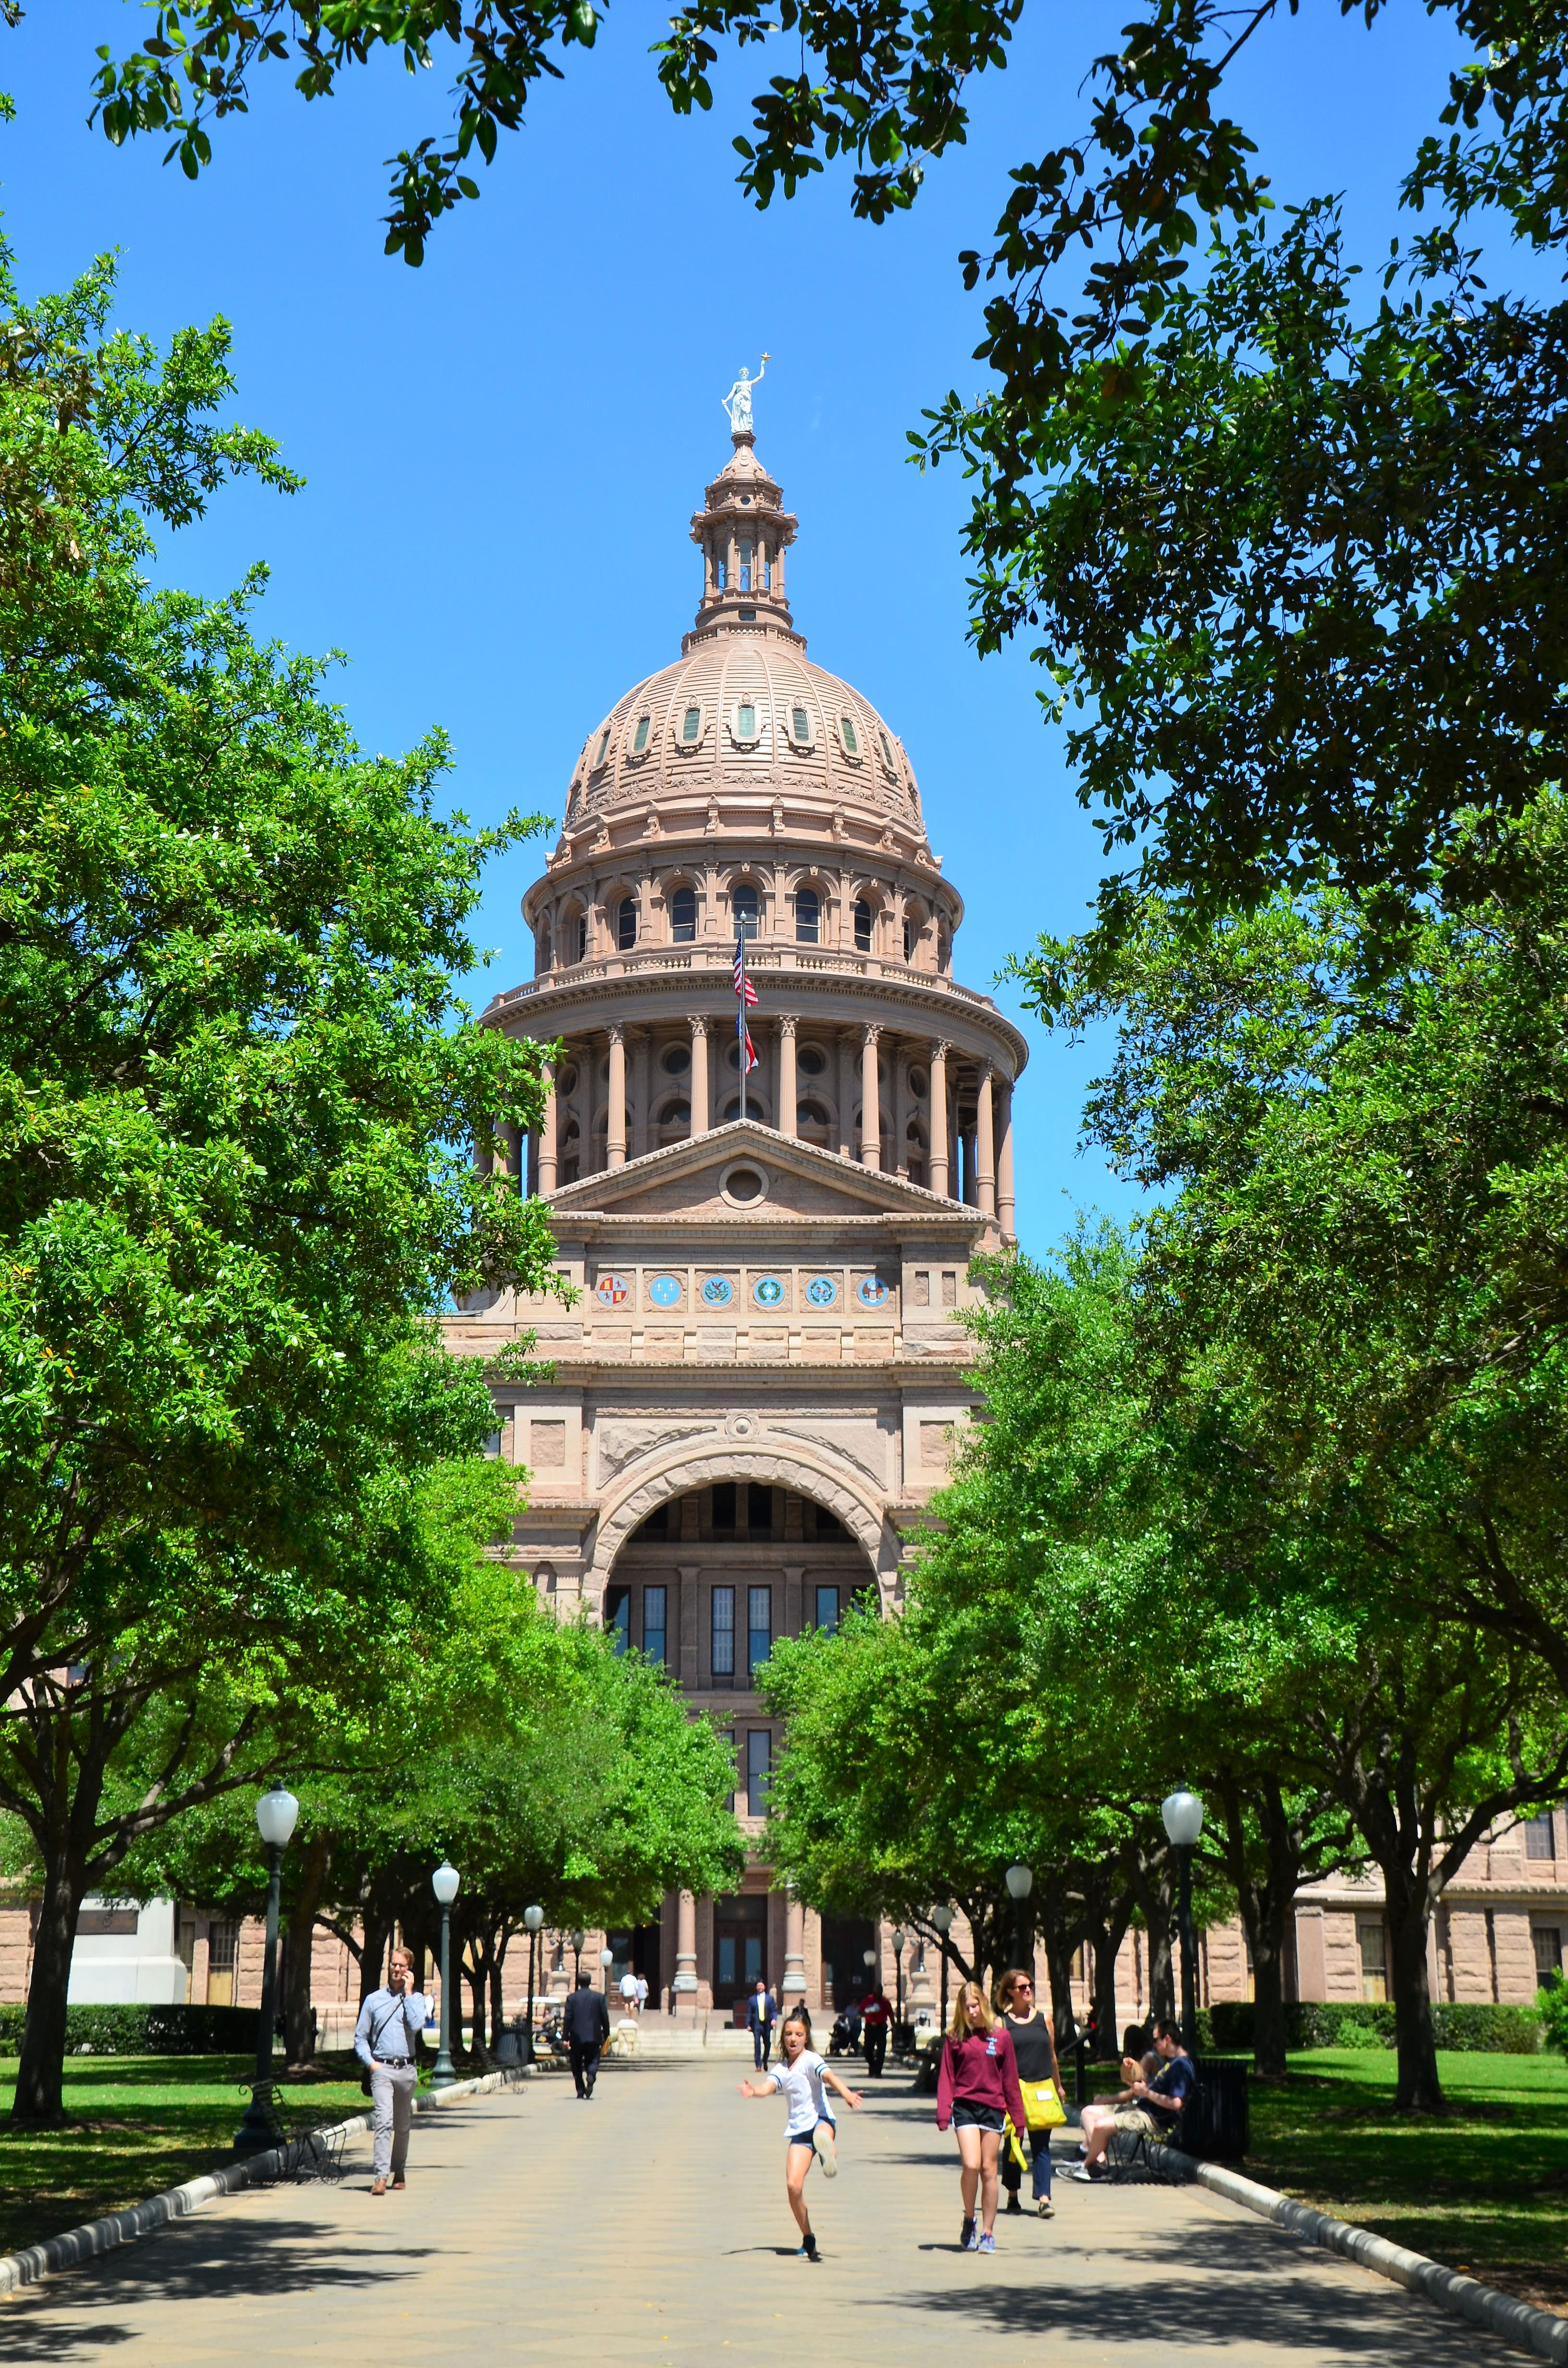 An auspicious red granite exterior greets visitors to the Texas Capitol in downtown Austin. At 360,000 square feet, it is larger than any other state capitol building and the national capitol in Washington, D.C. The Texas legislature meets only every other year and for no more than 140 days. The governor may call up special sessions. (Photo by Jerry Ondash)